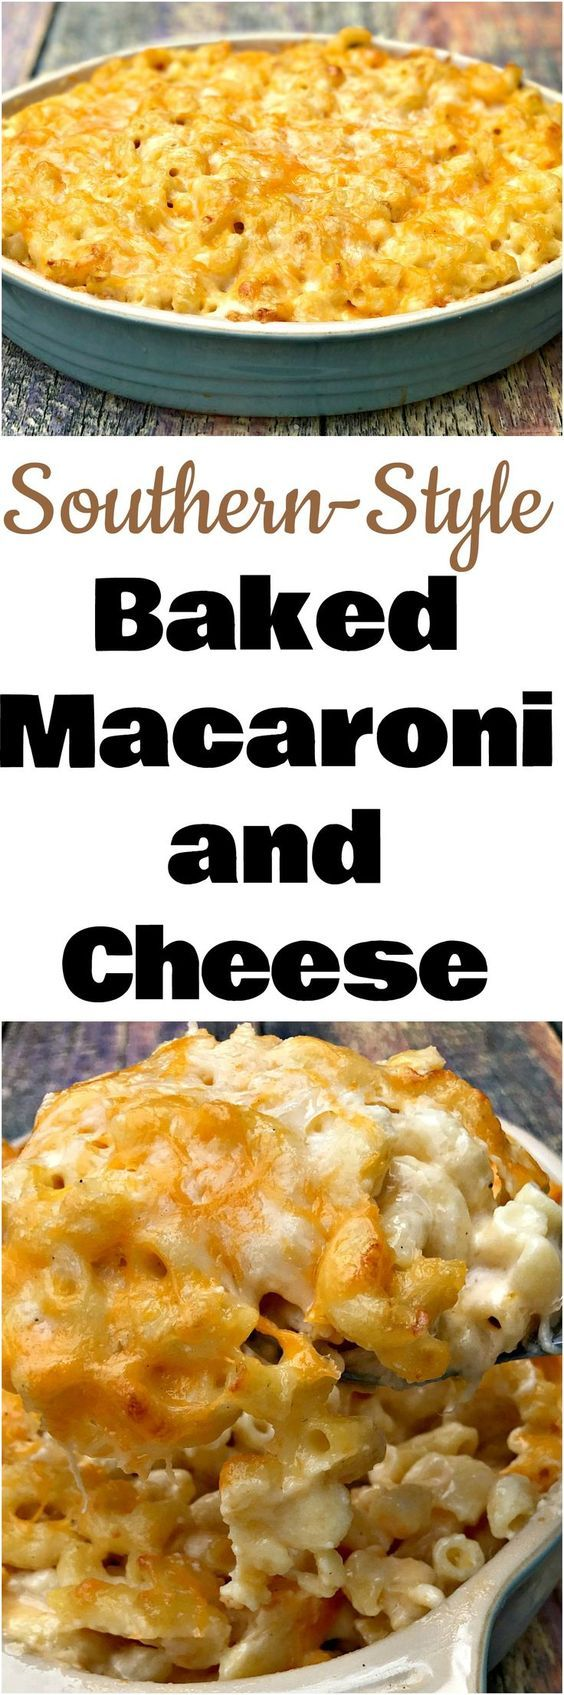 Southern style baked macaroni and cheese is a homemade soul food southern style baked macaroni and cheese is a homemade soul food recipe with 5 creamy types of cheese perfect for thanksgiving christmas and ho forumfinder Images